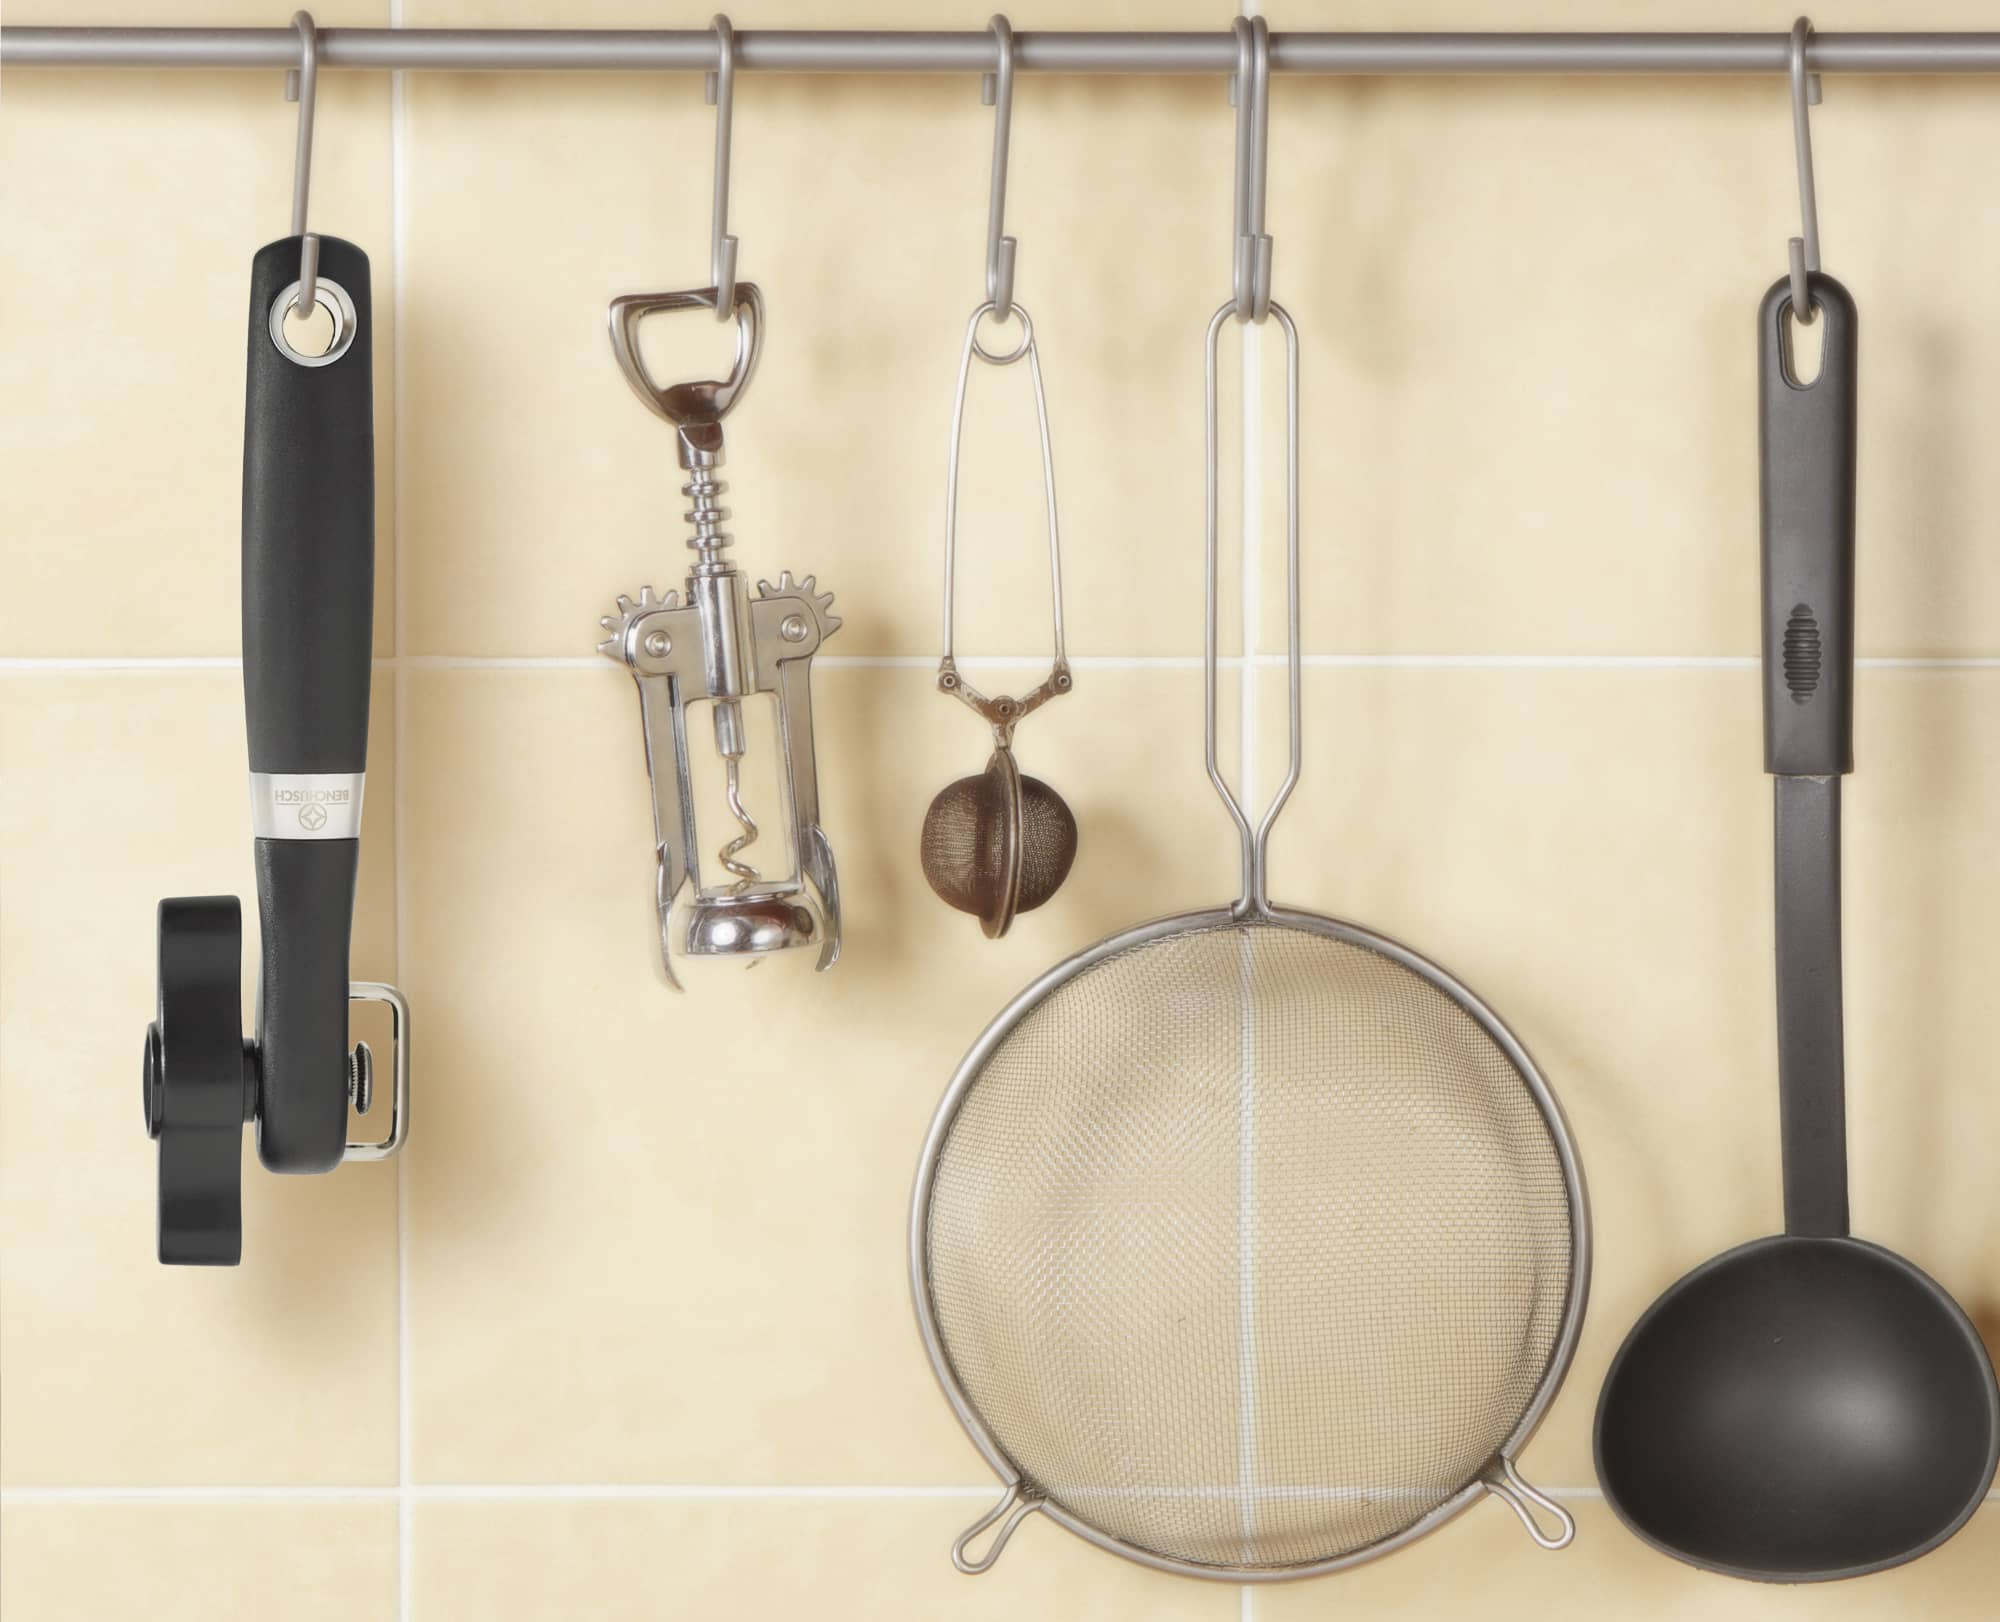 Benchusch Covera Smooth Edge Can Opener is hung on the kitchen with other utensils